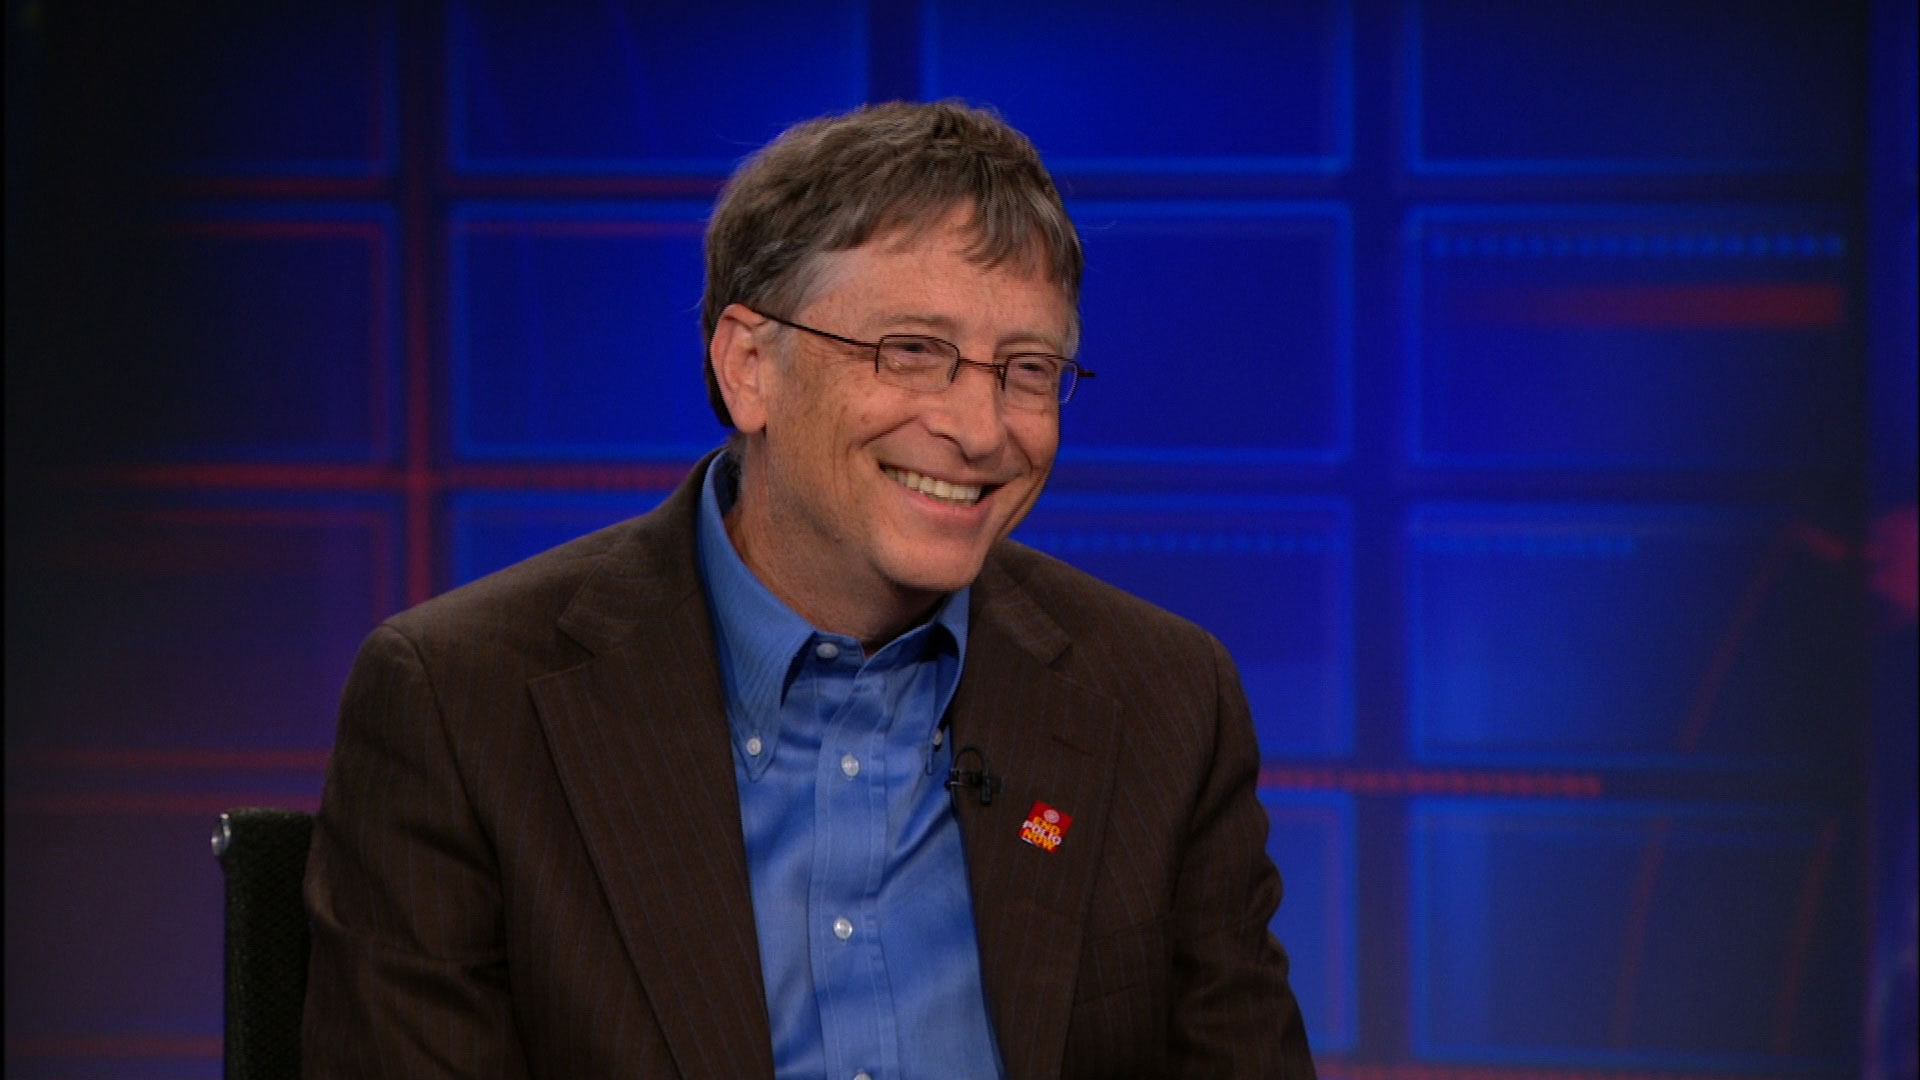 Bill Gates Pic & images